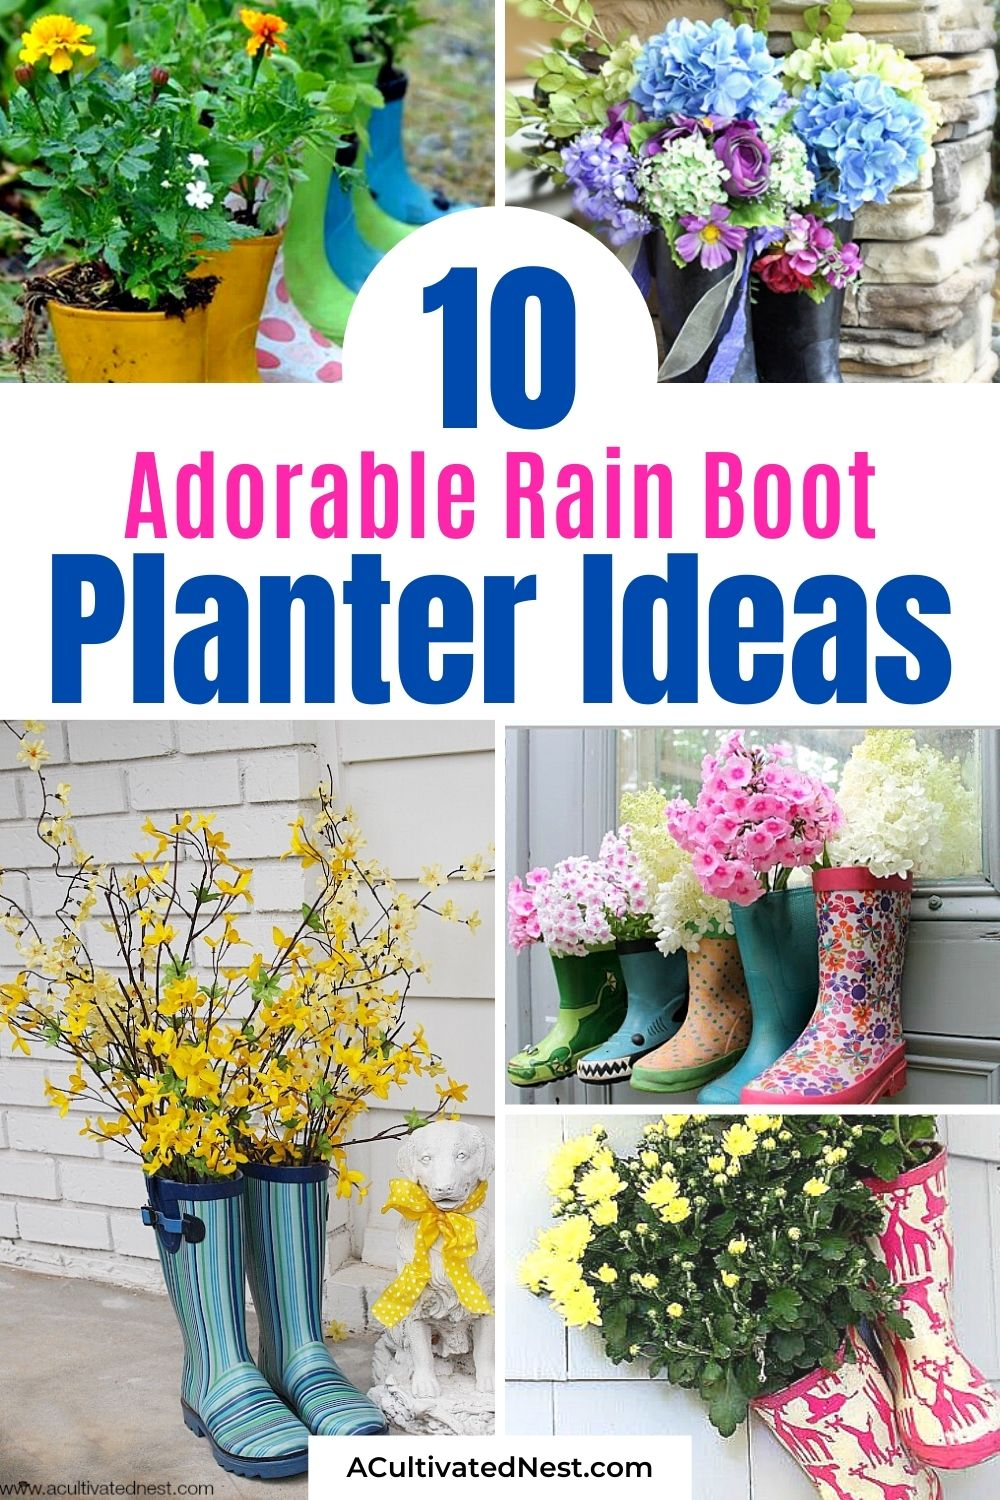 10 Adorable Rain Boot Planter Ideas- If you want a cute way to decorate for spring, then you should make some rain boot planters! They're also a great way to repurpose old or out grown rubber boots! | #springDIY #flowerPlanter #flowerGarden #springDecor #ACultivatedNest